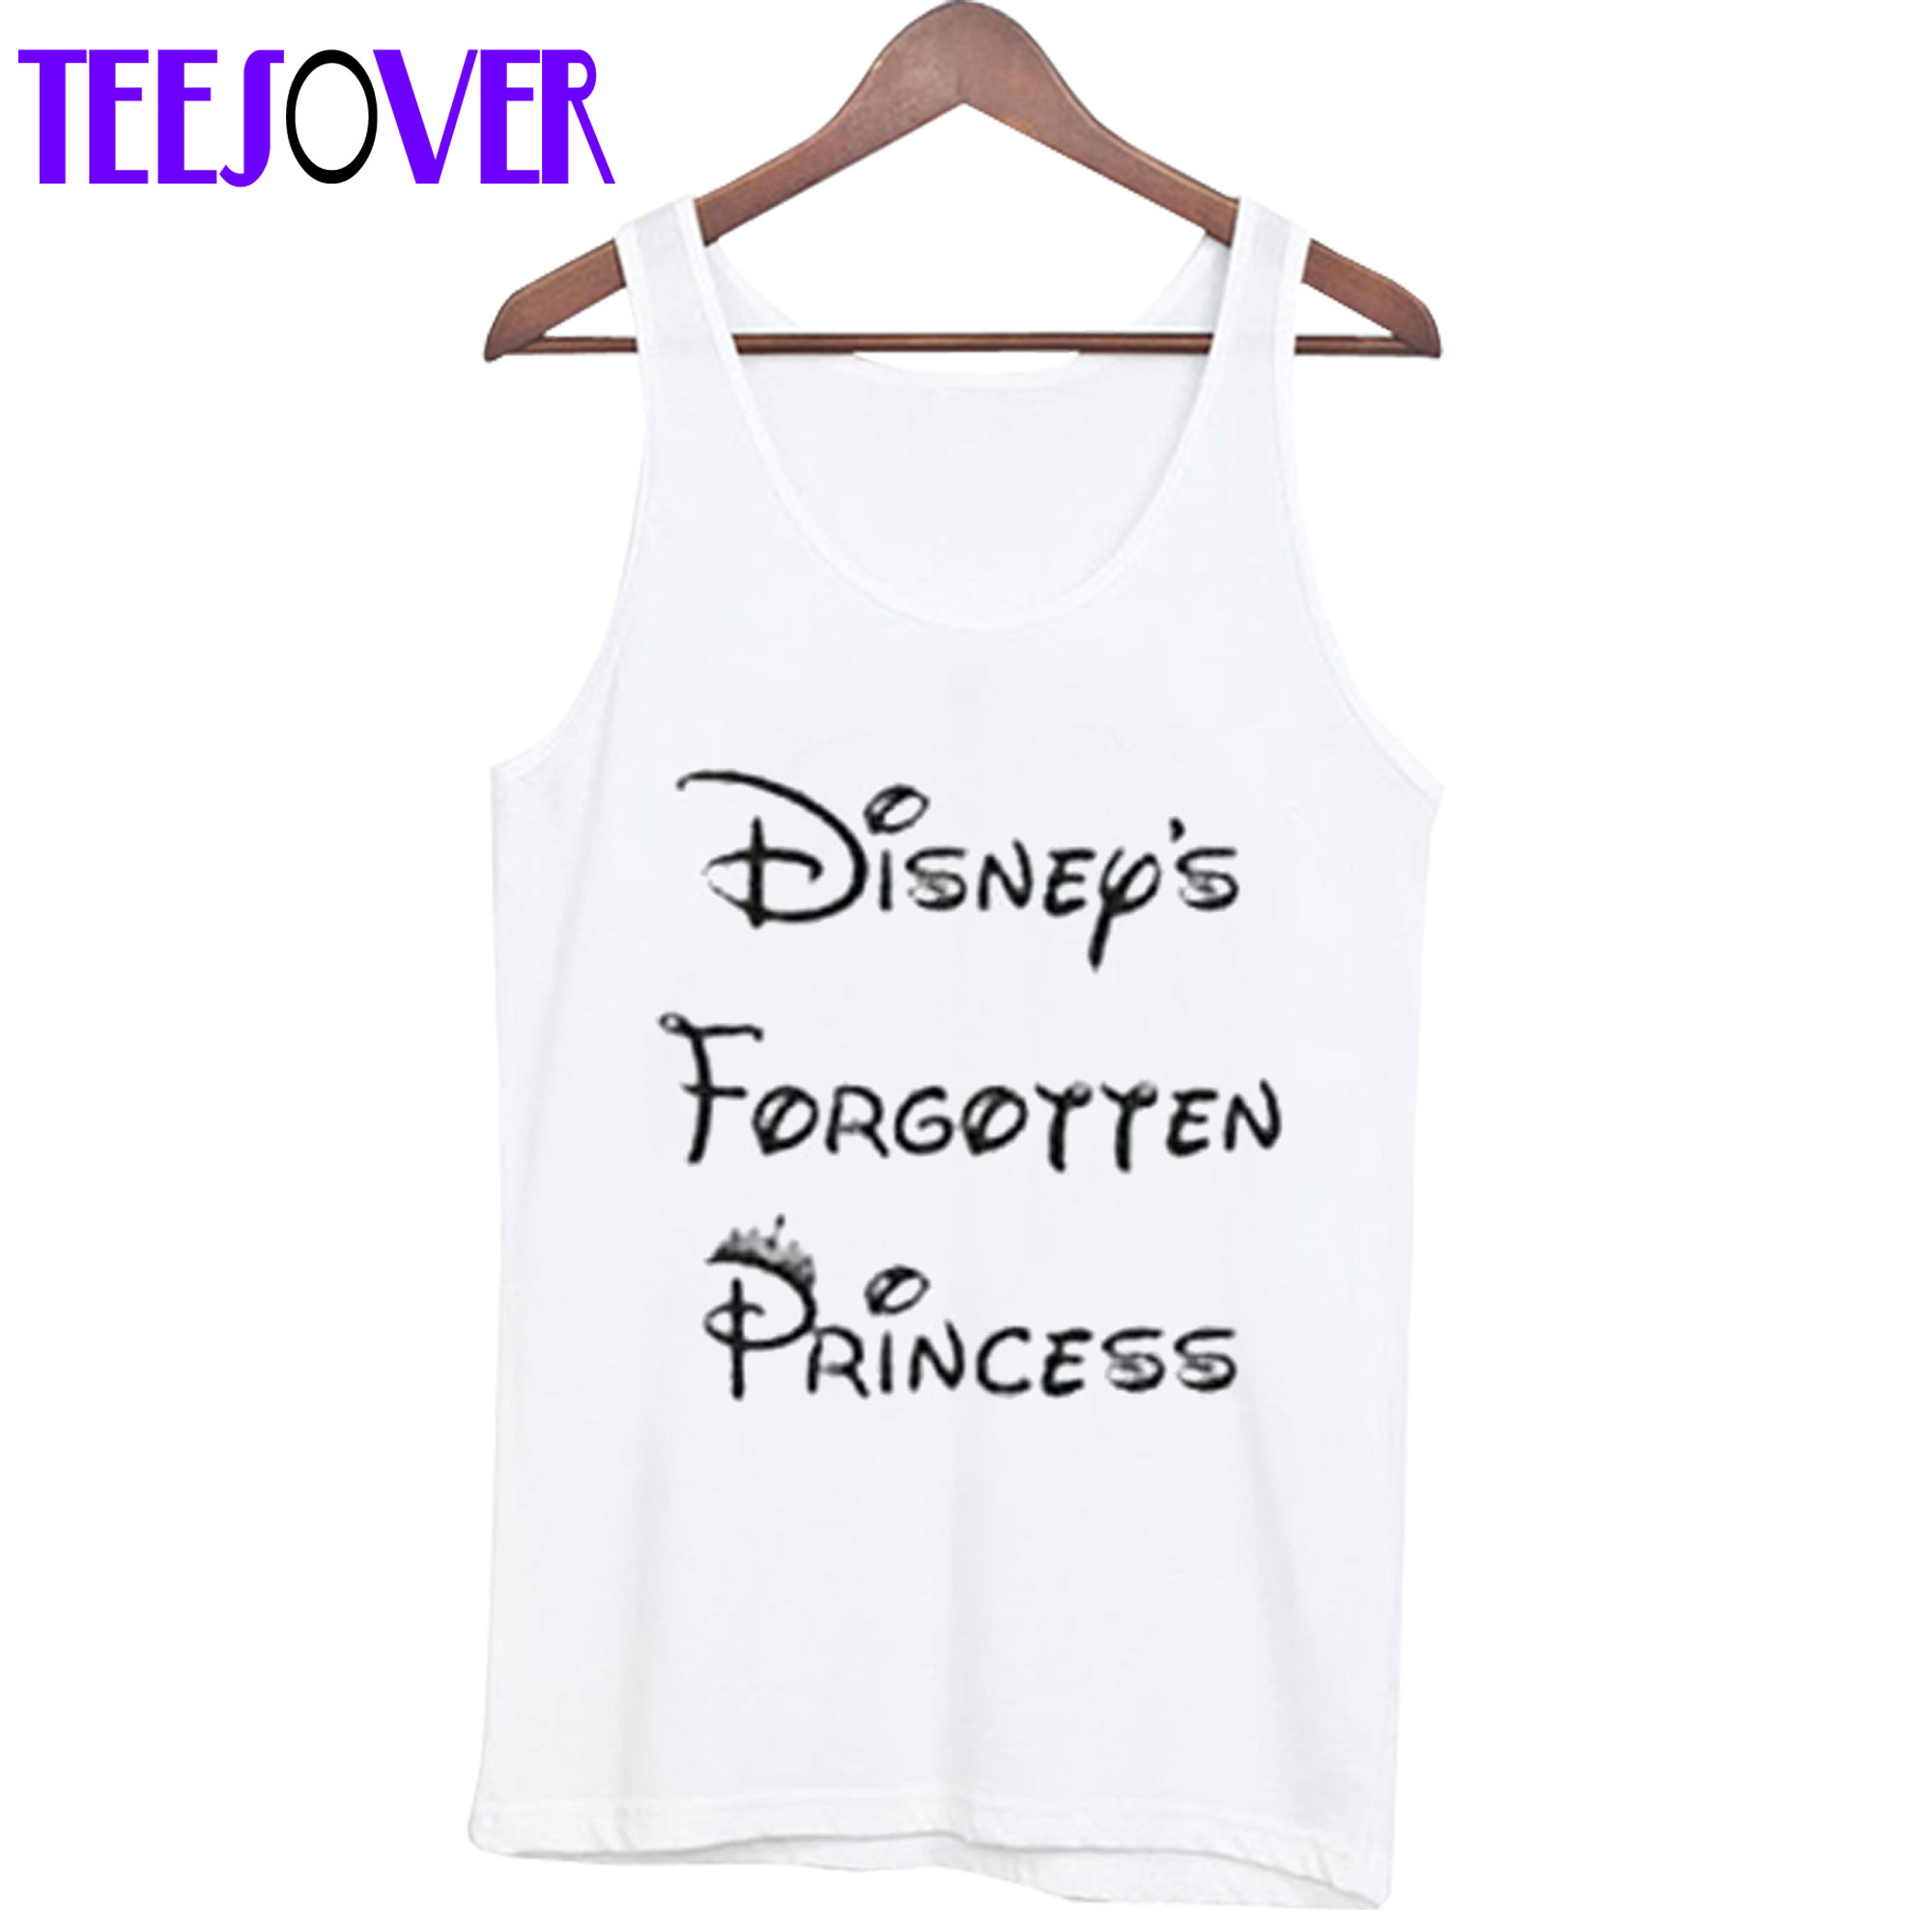 Disney's Forgotten Princess Tank Top